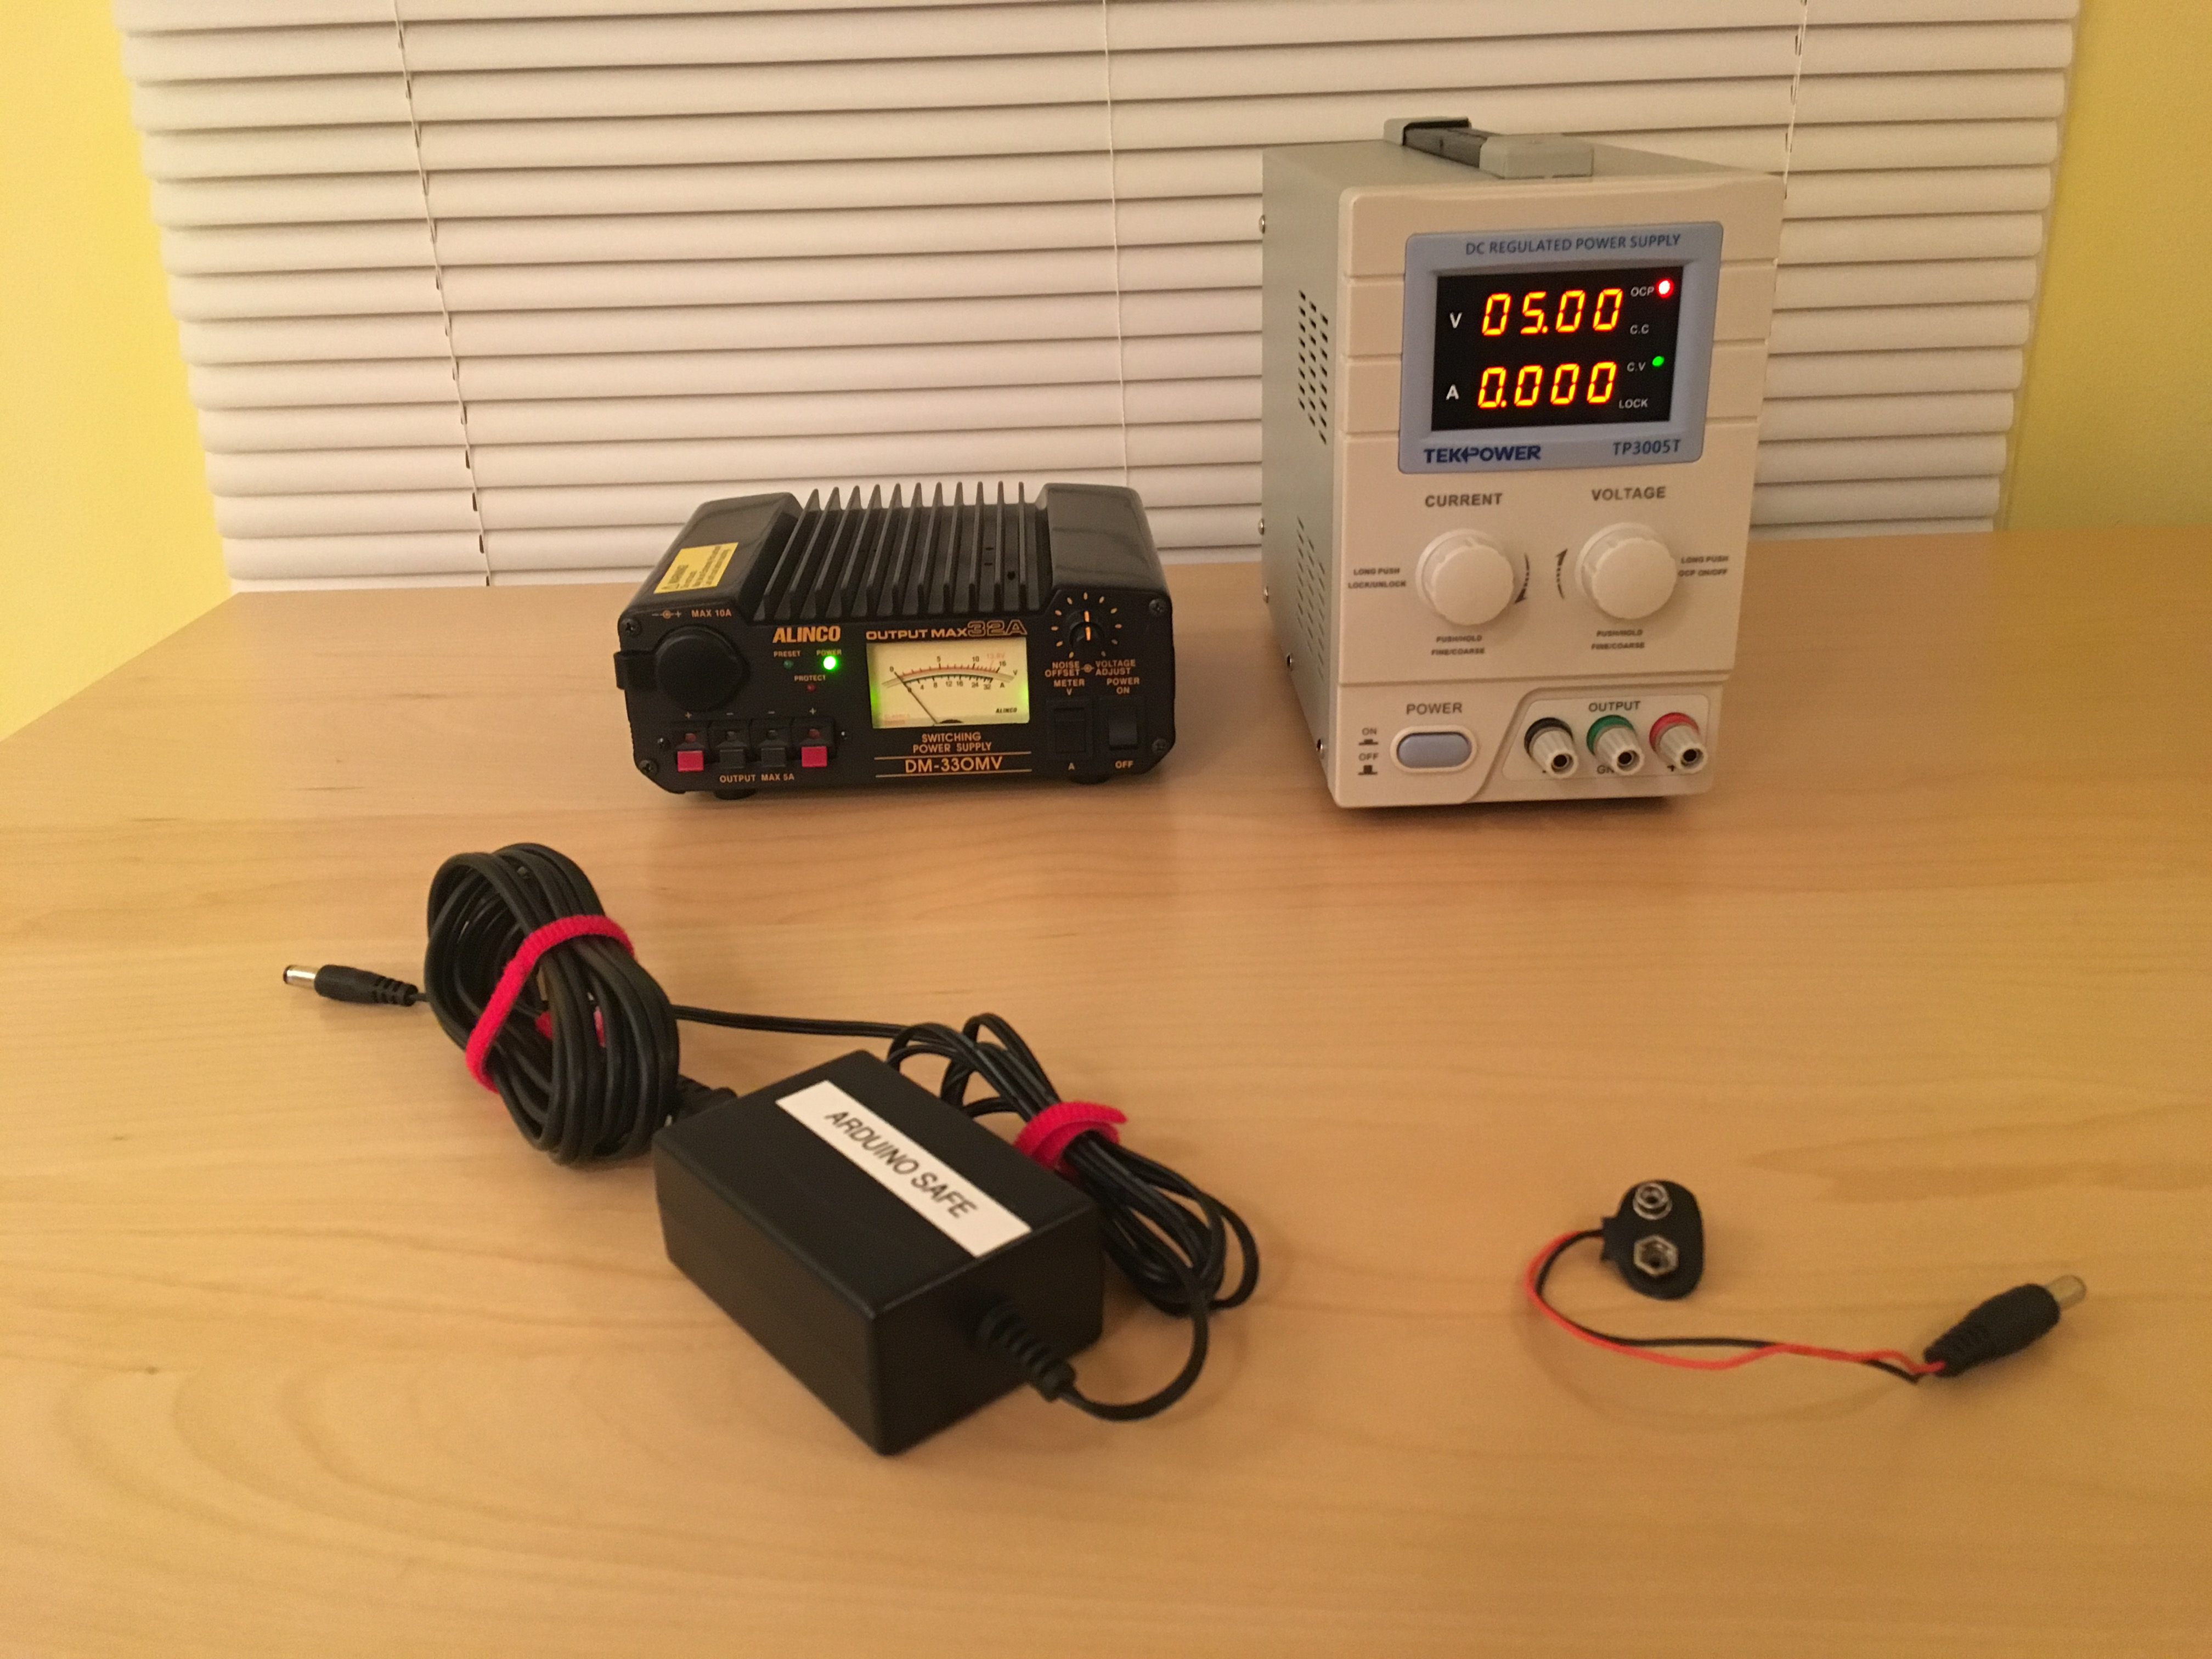 Iot Lab Maker Safety Part 2 Erik Heidt 9v Negative Power Supply Units Electronic Projects Circuits 2017 12 27 205009